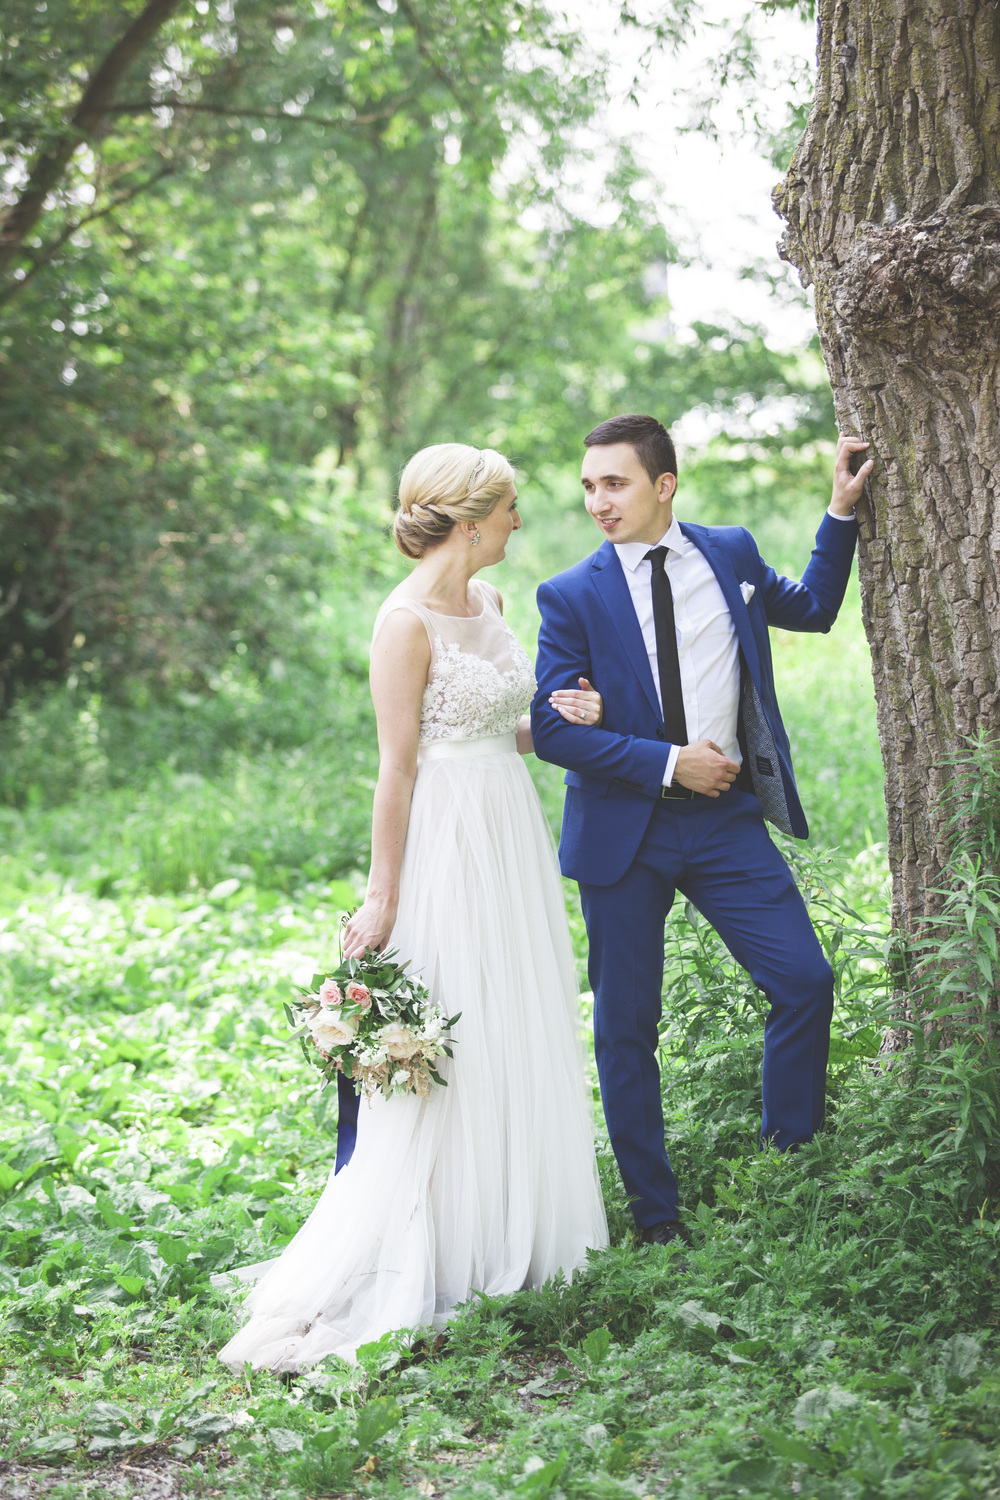 The small woodland at Cherry Beach makes a great setting for wedding photography.